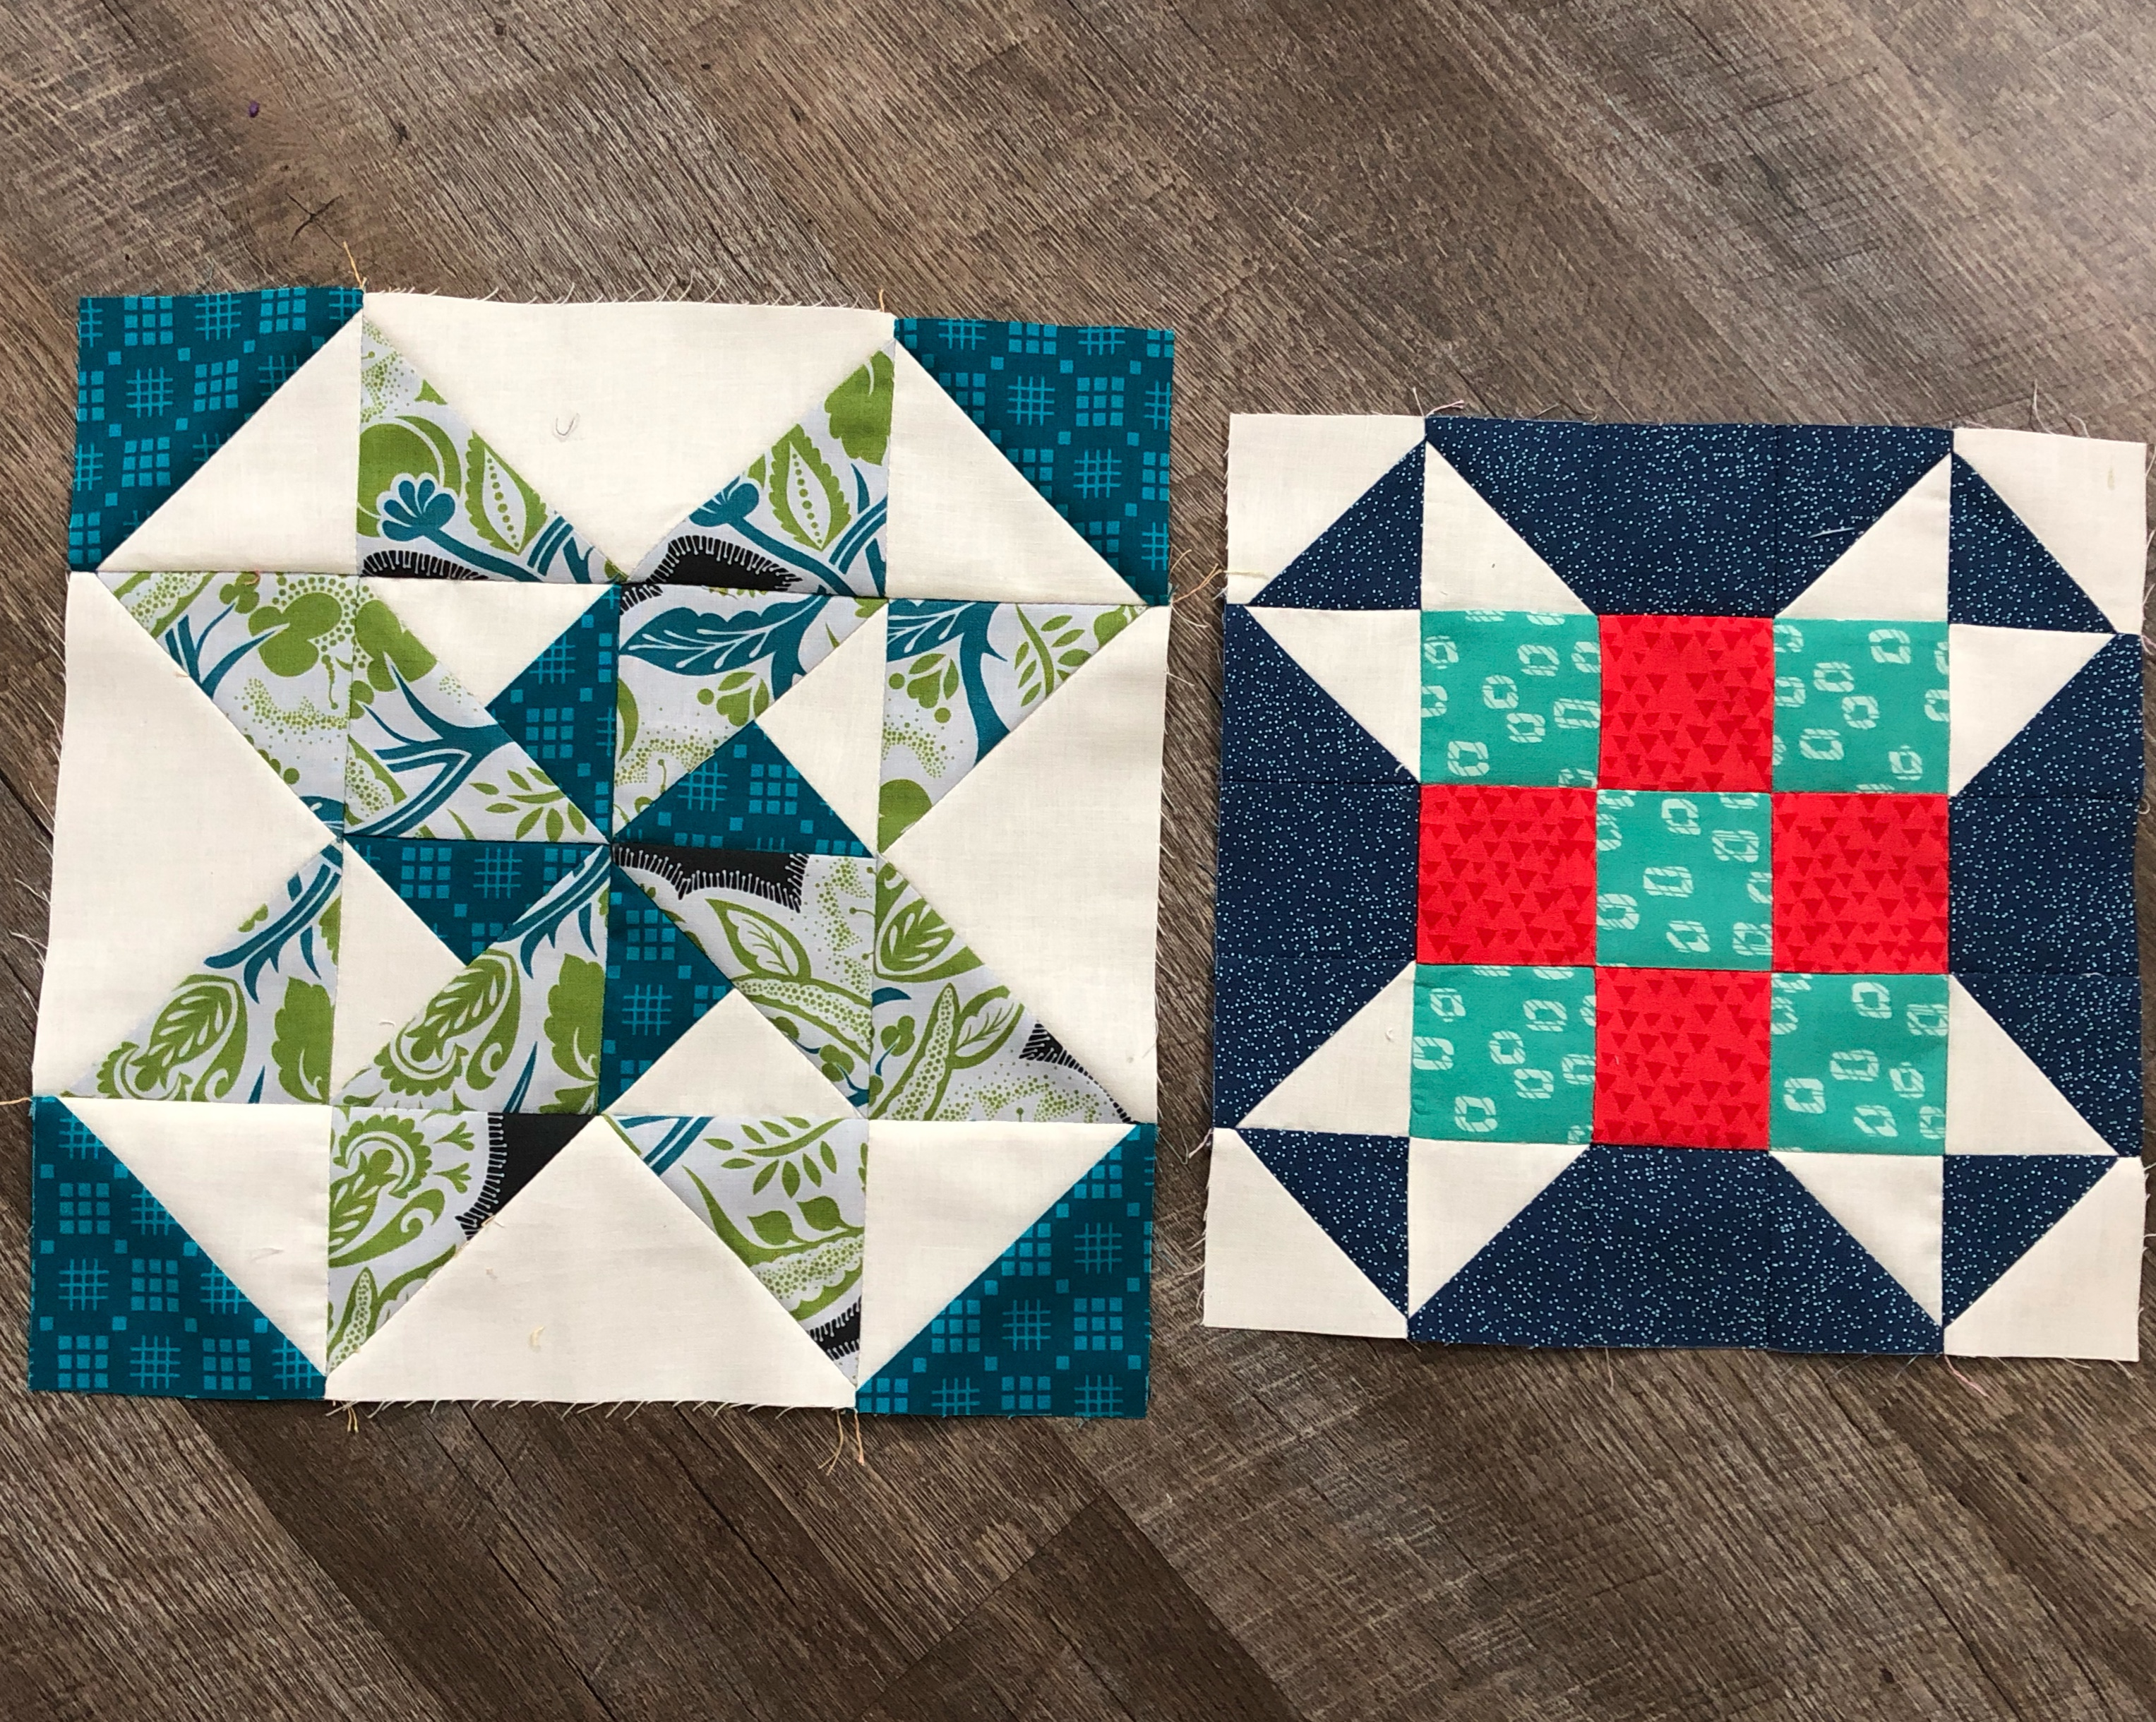 Finally! Got my center star block done. I really love this block. I'm trying to decide if I sh